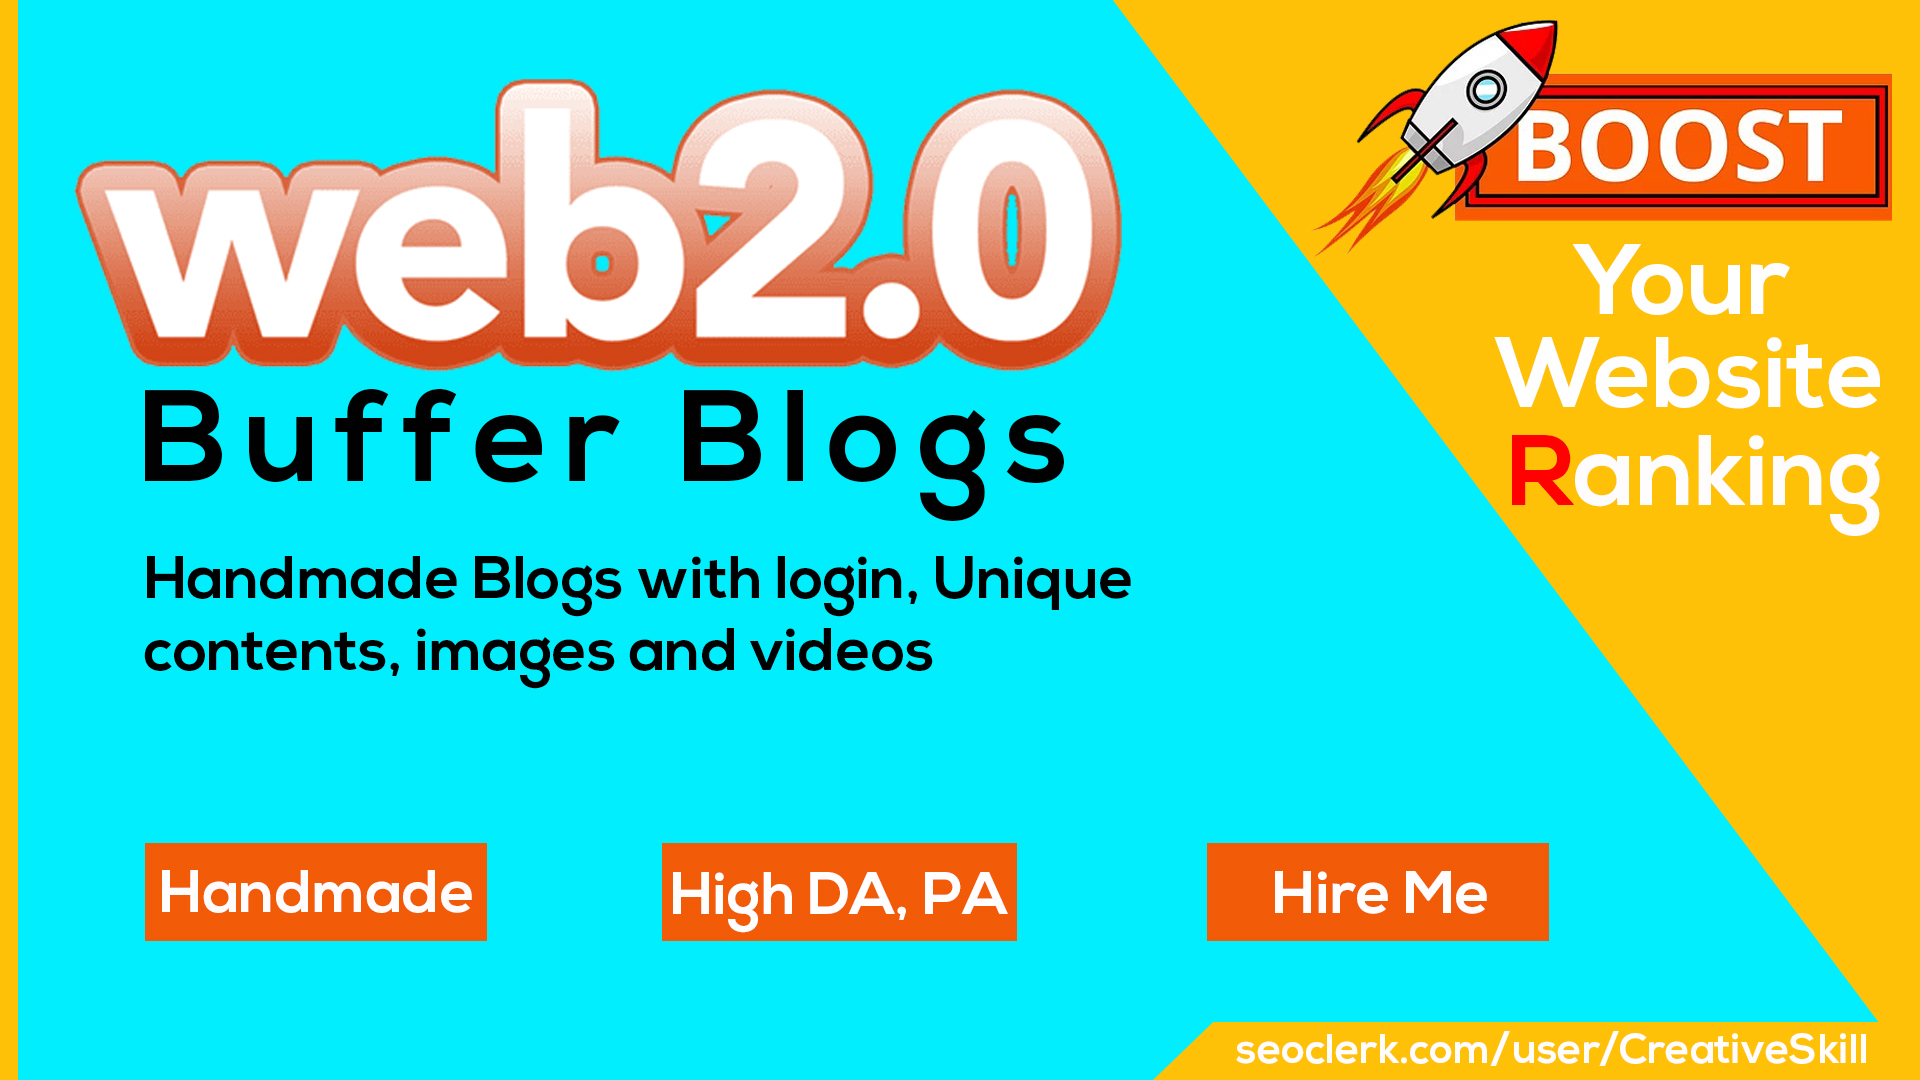 Manually Create 10 Web 2.0 Buffer Blogs With Login Get Bonus 10 Posts